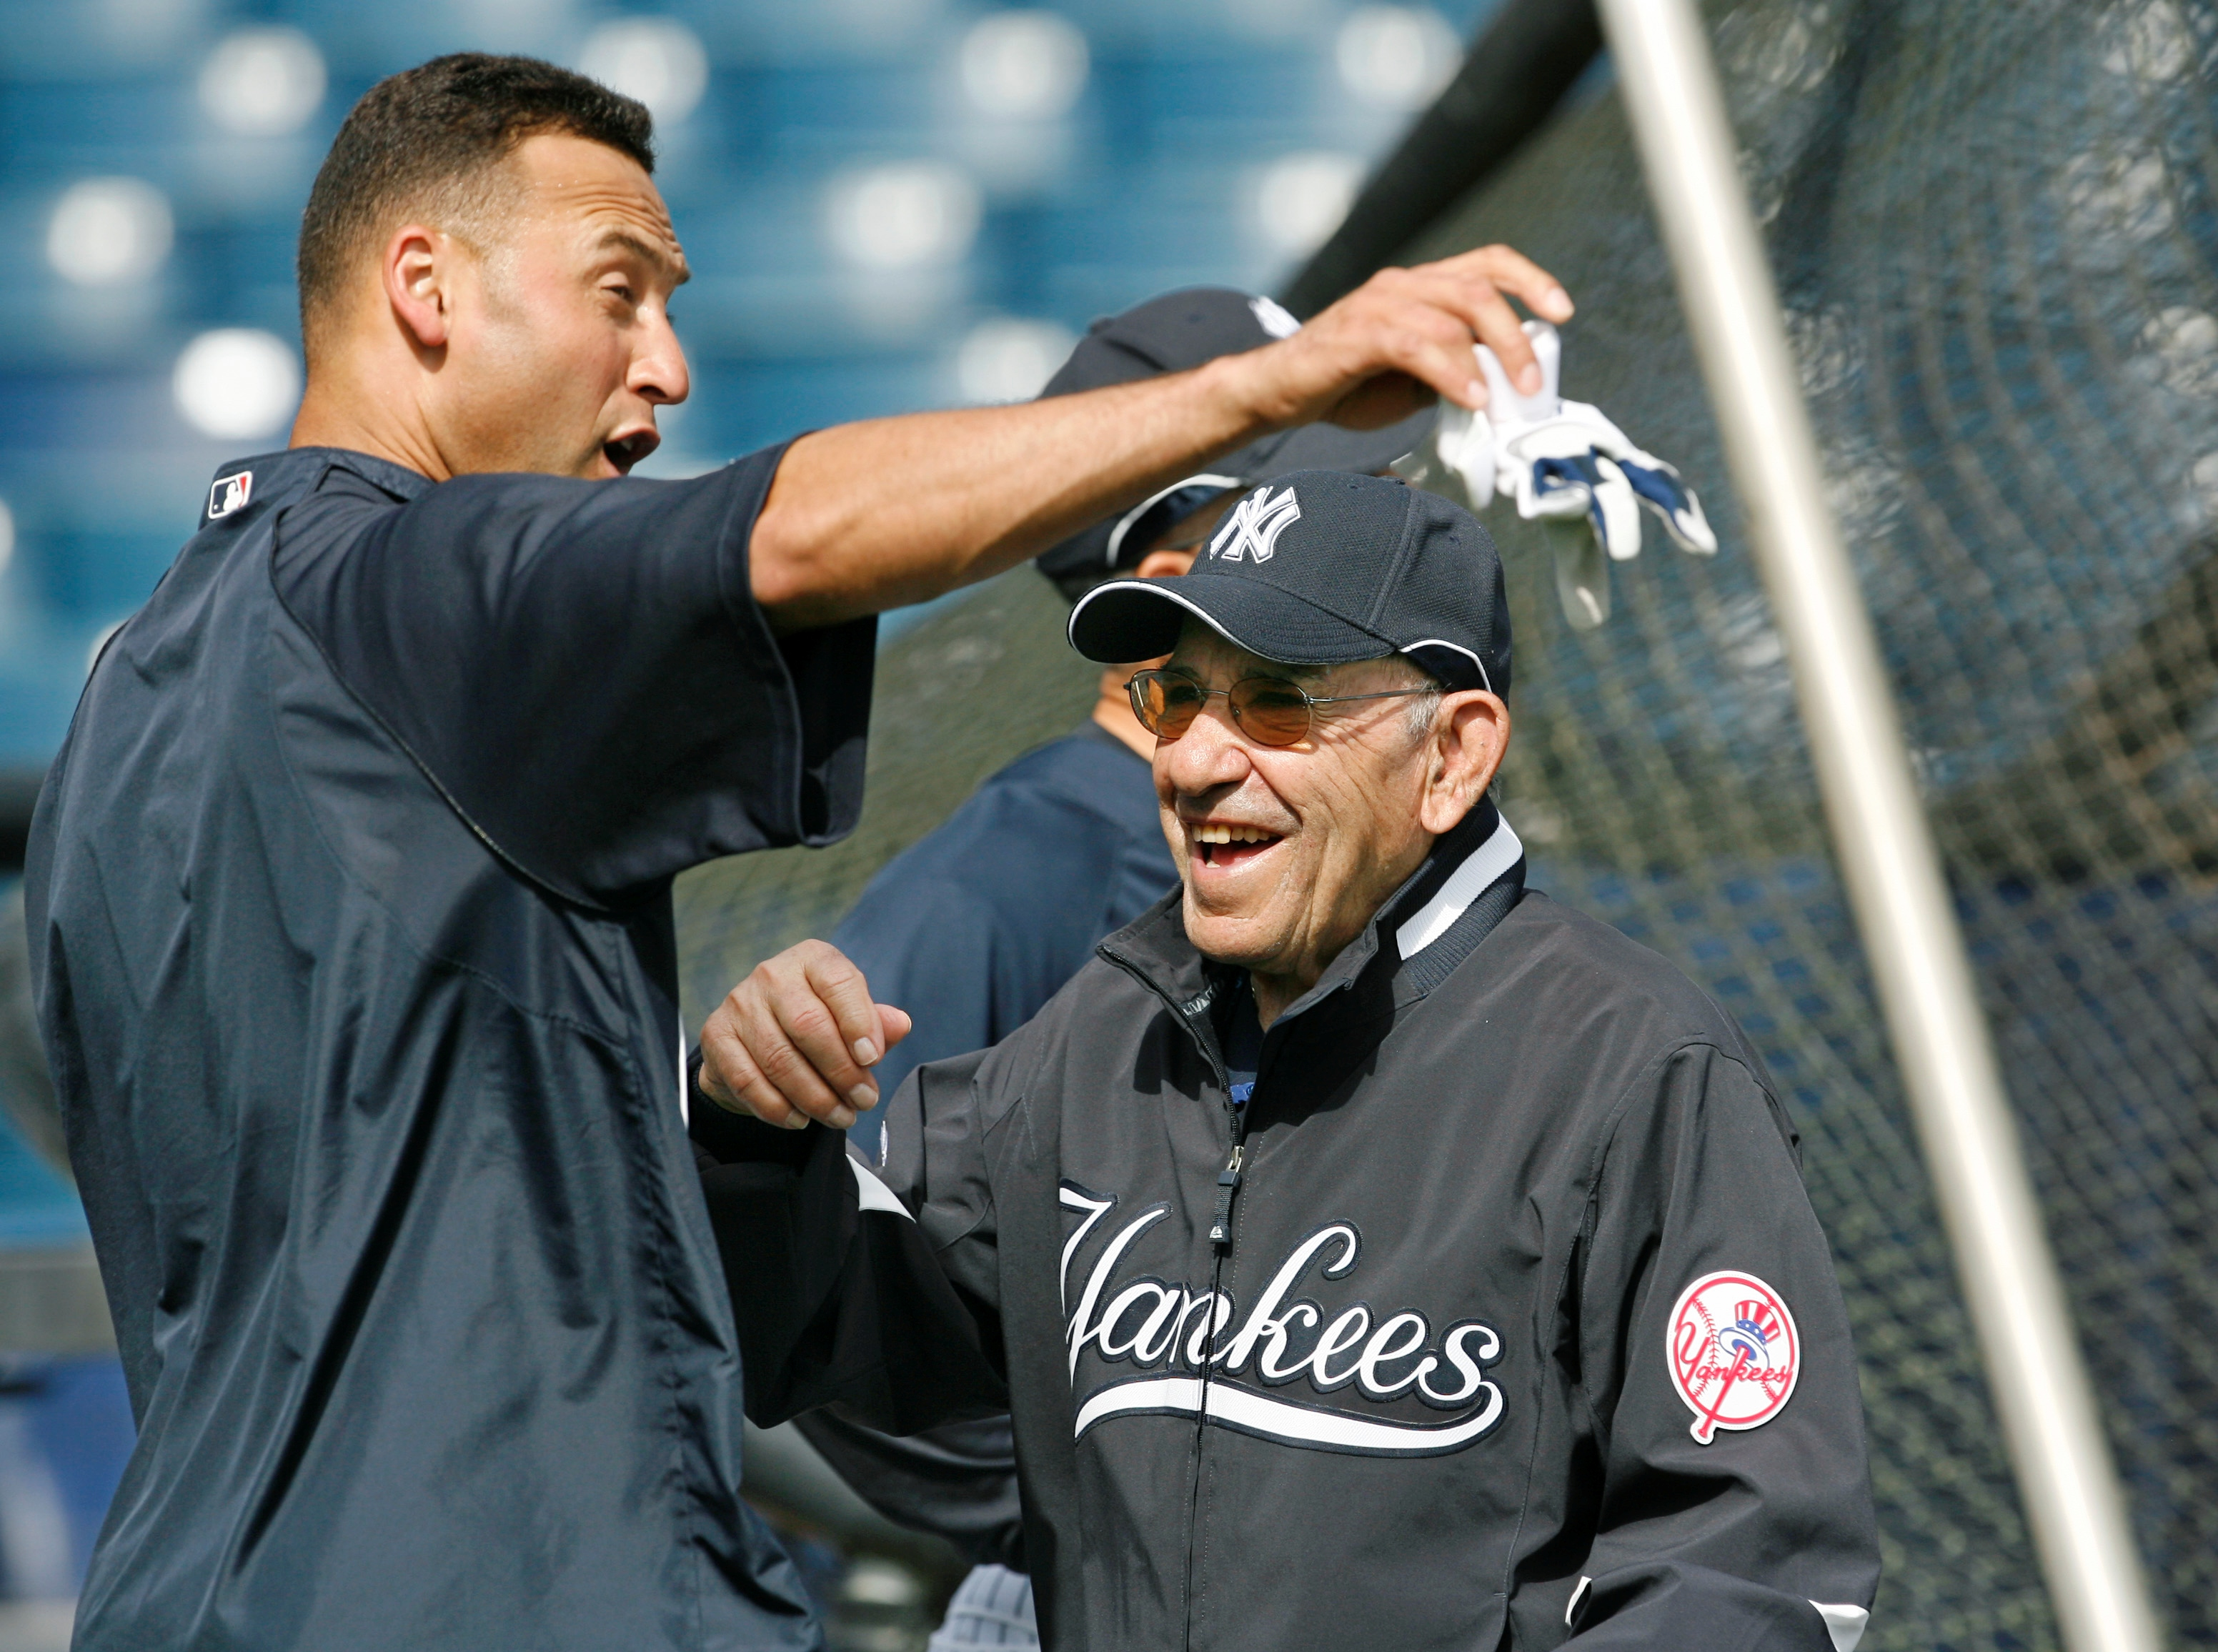 File-This March 7, 2008, file photo shows New York Yankees shortstop Derek Jeter, left, and Yogi Berra clowning around by the batting cage before the Yankees spring training baseball game against the Houston Astros at Legends Field in Tampa. Berra, the Yankees Hall of Fame catcher, has died. He was 90. (AP Photo/Kathy Willens, File)